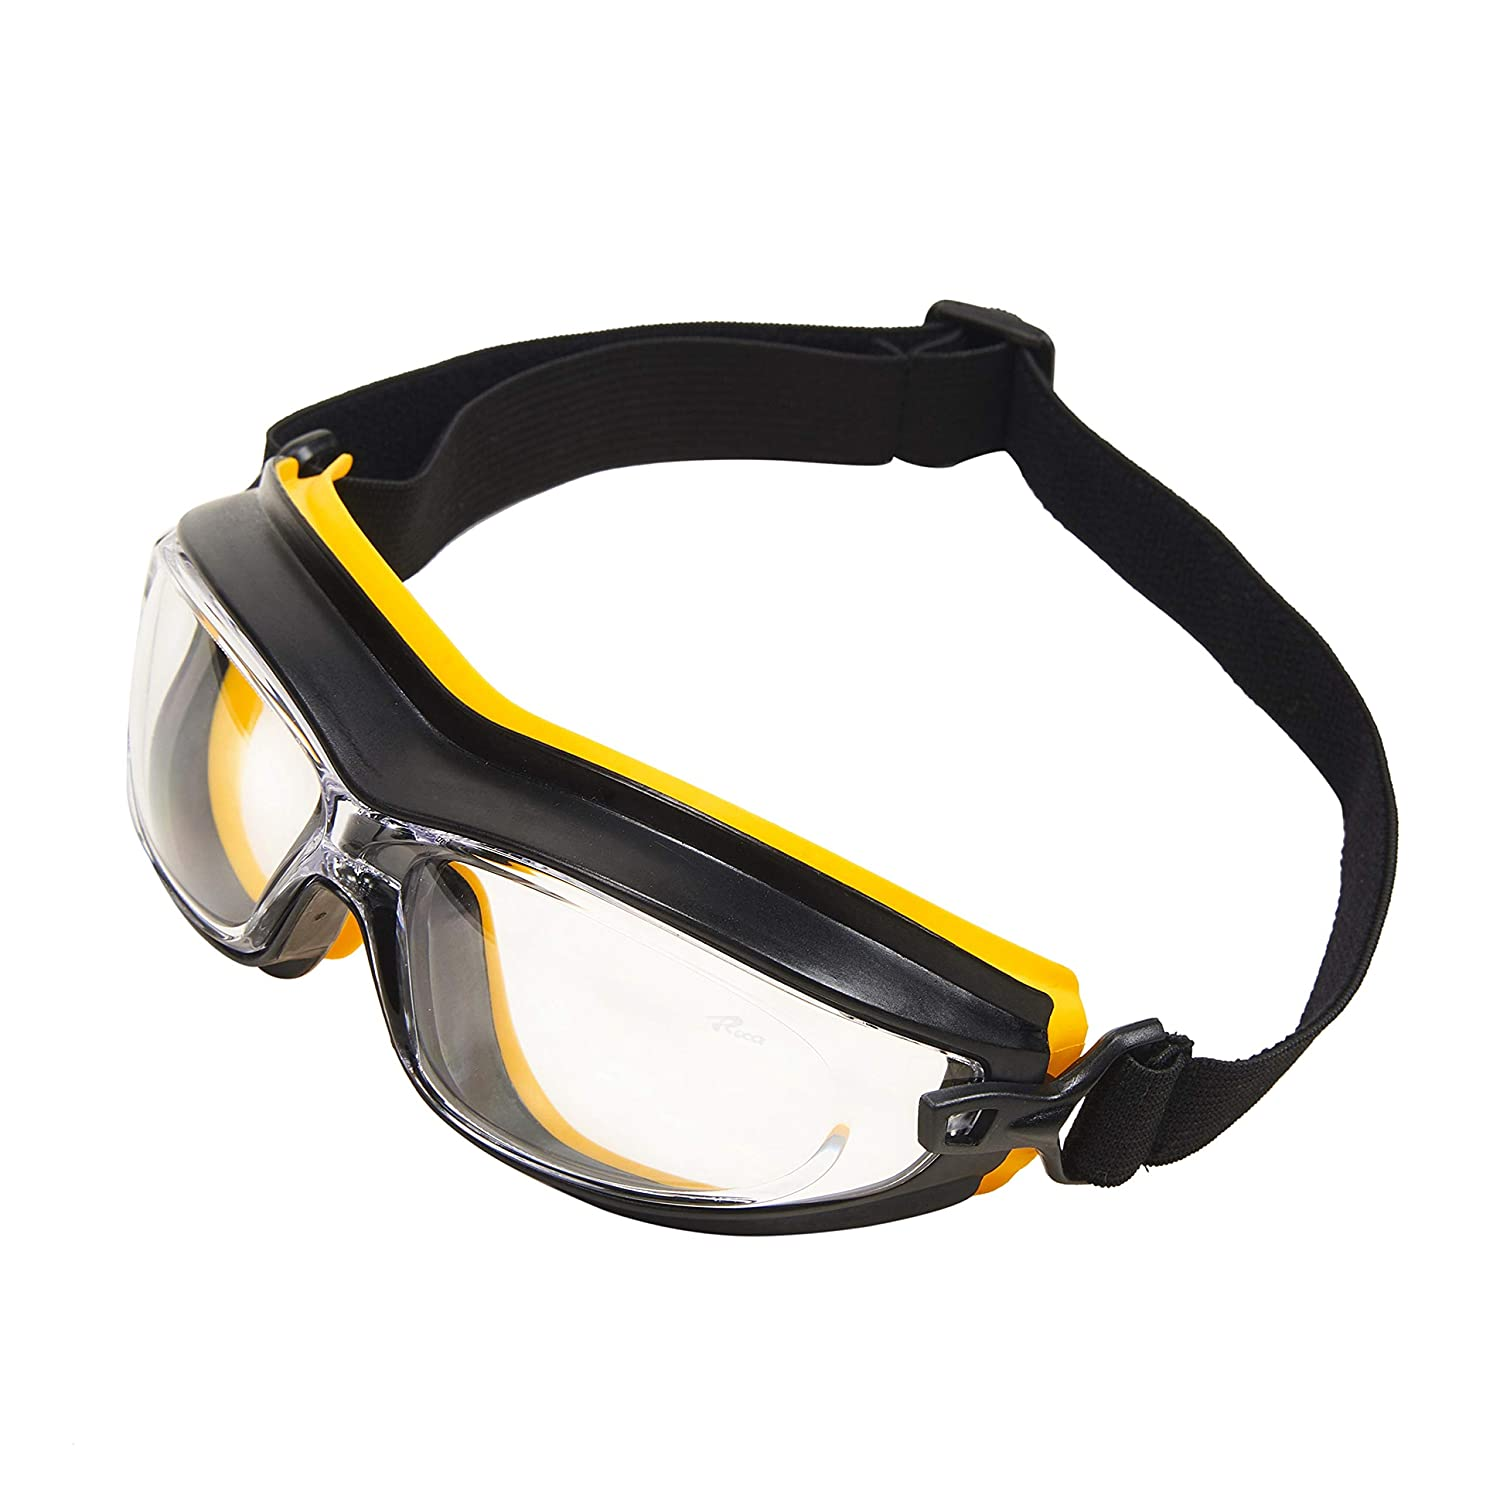 Babimax Industrial Safety Work Goggles Sports Eye Protection Glasses with Clear Anti Fog Scratch Resistant Wrap-Around Lenses and No-Slip Grips XDC-002